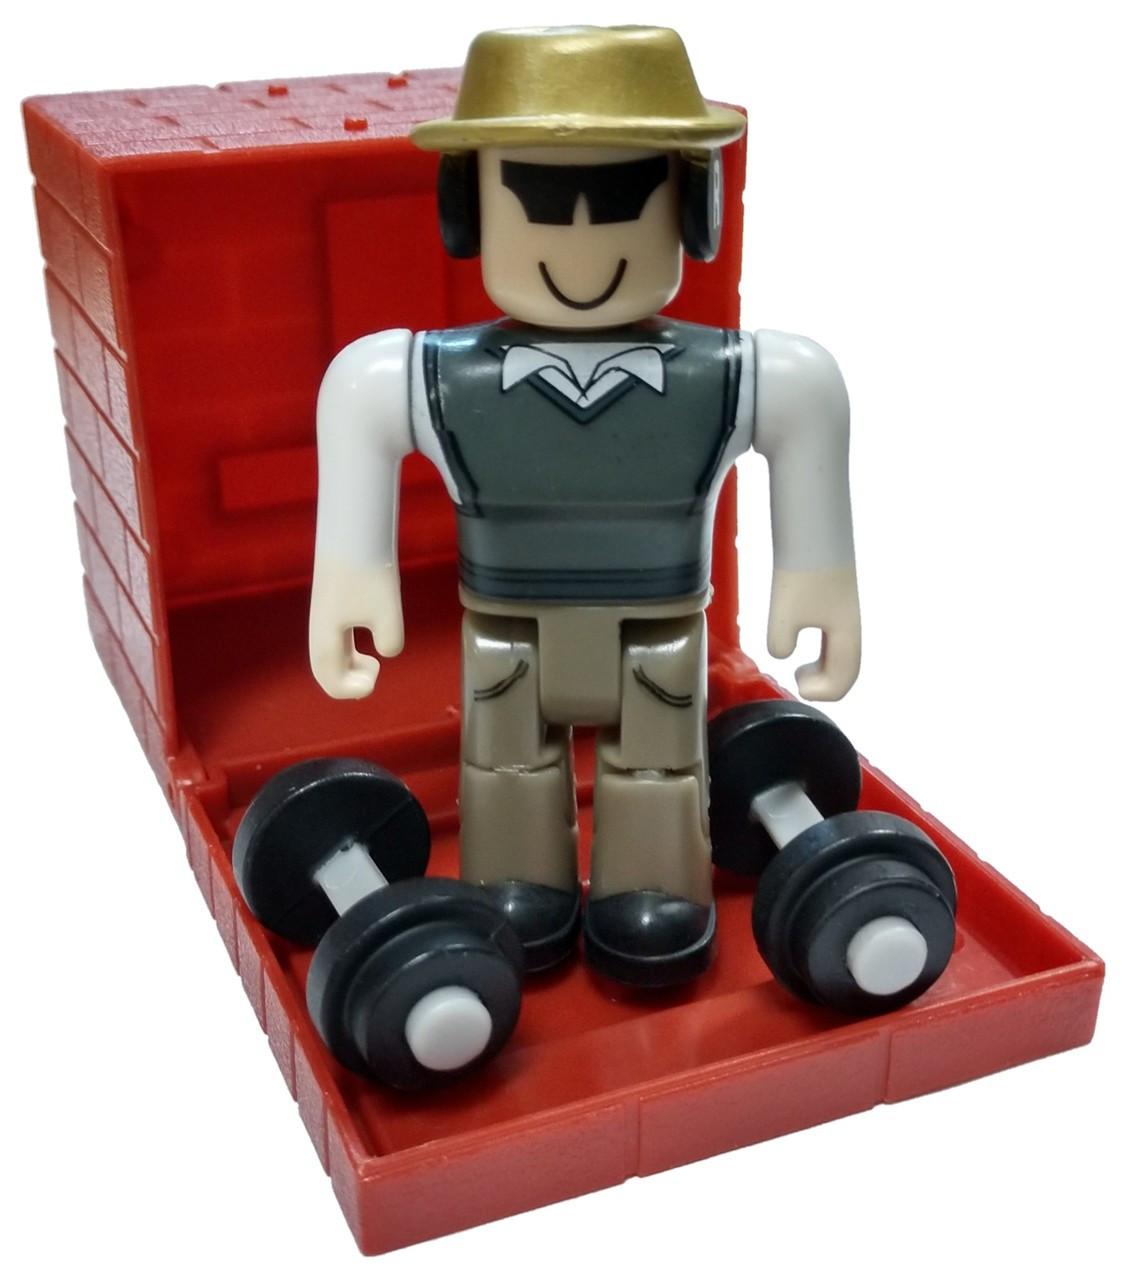 Roblox Series 4 - Roblox Red Series 4 Badcc Mini Figure With Red Cube And Online Code Loose